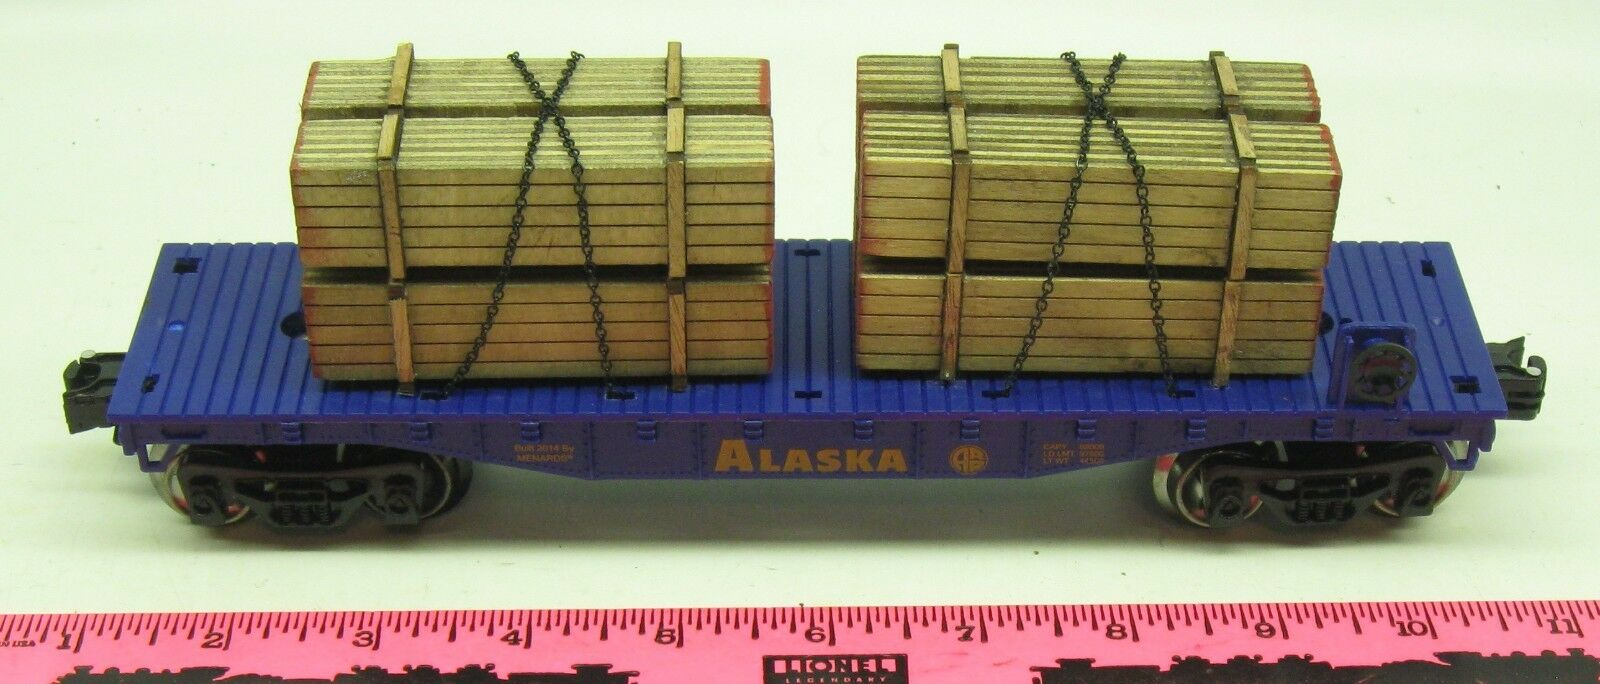 Menards O gauge Alaska Railroad flatcar with lumber load Predotype